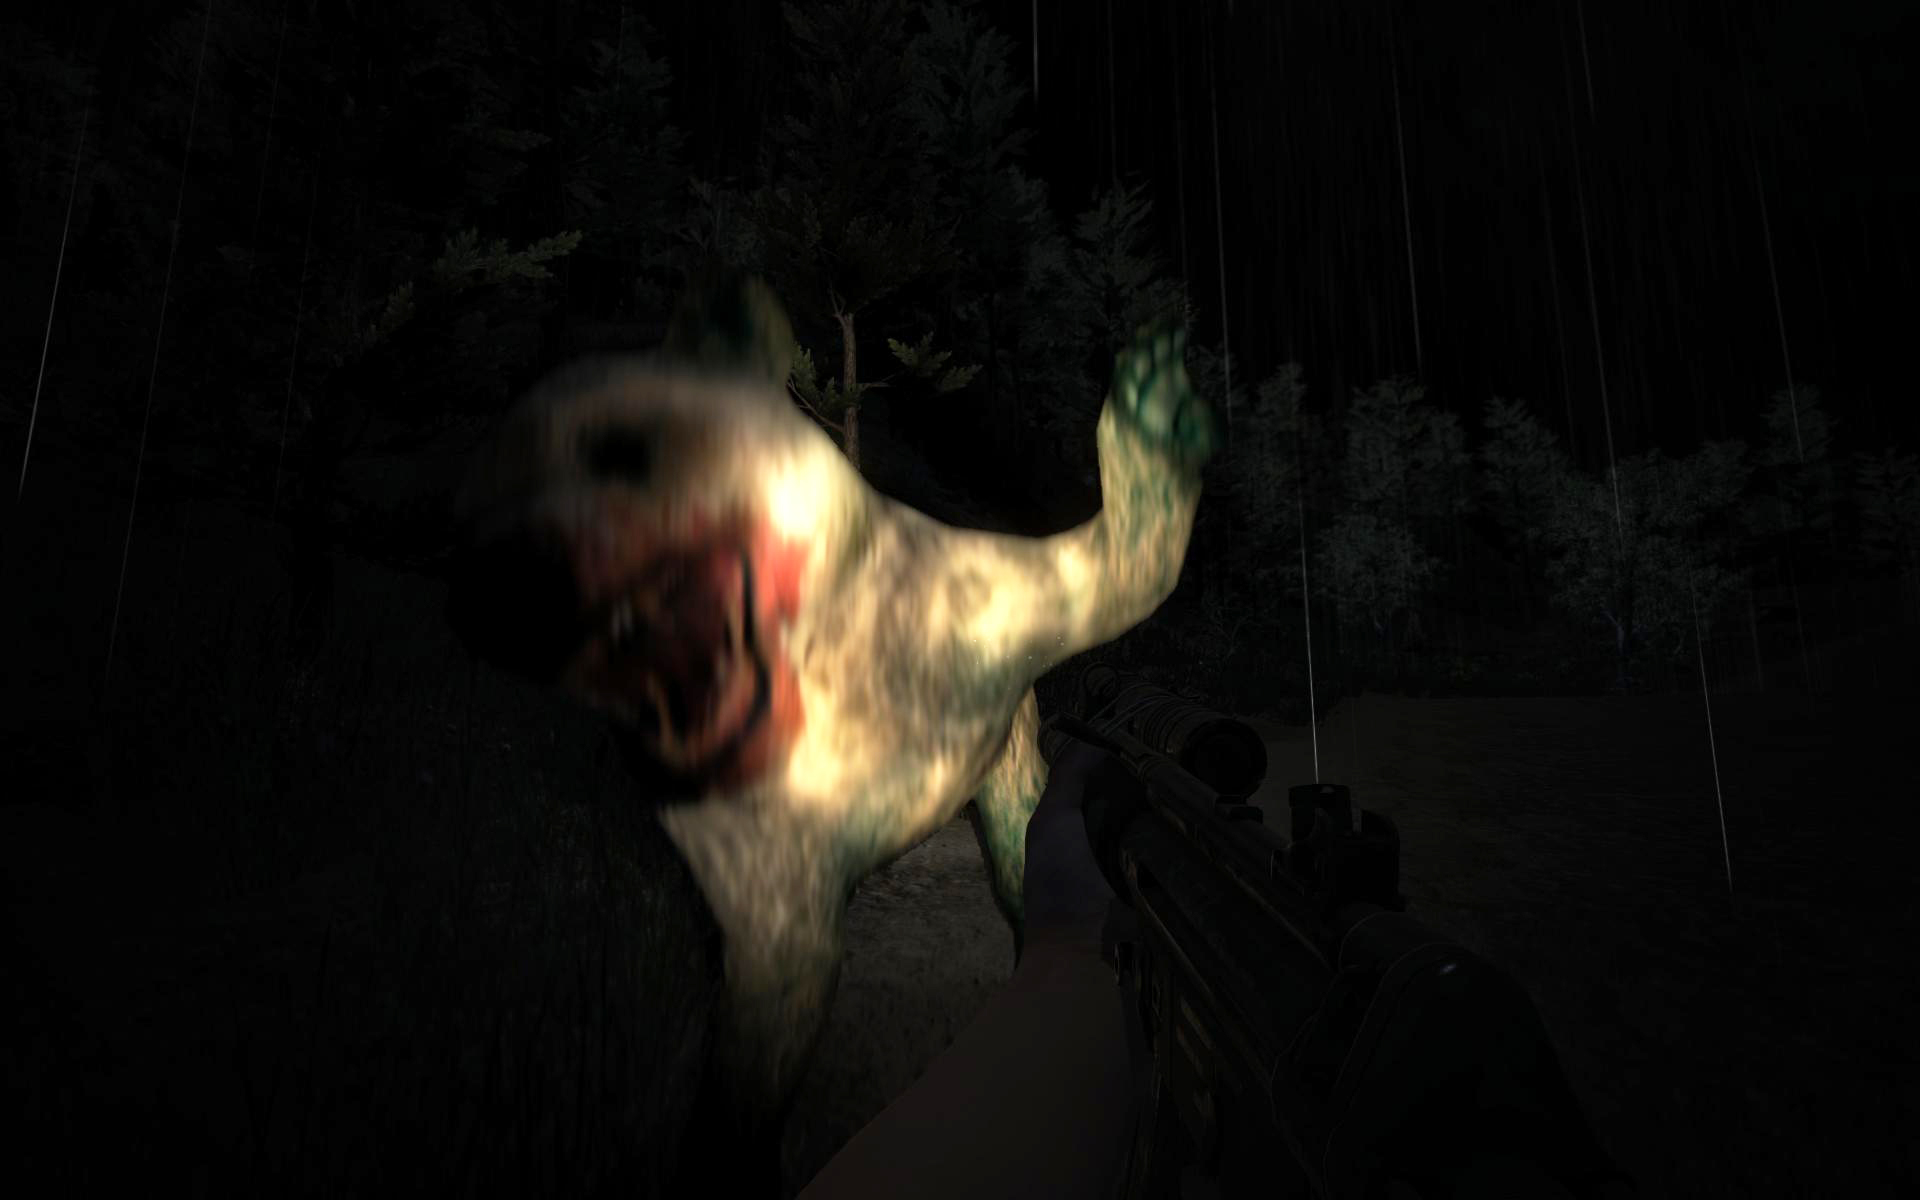 how to get mods for 7 days to die